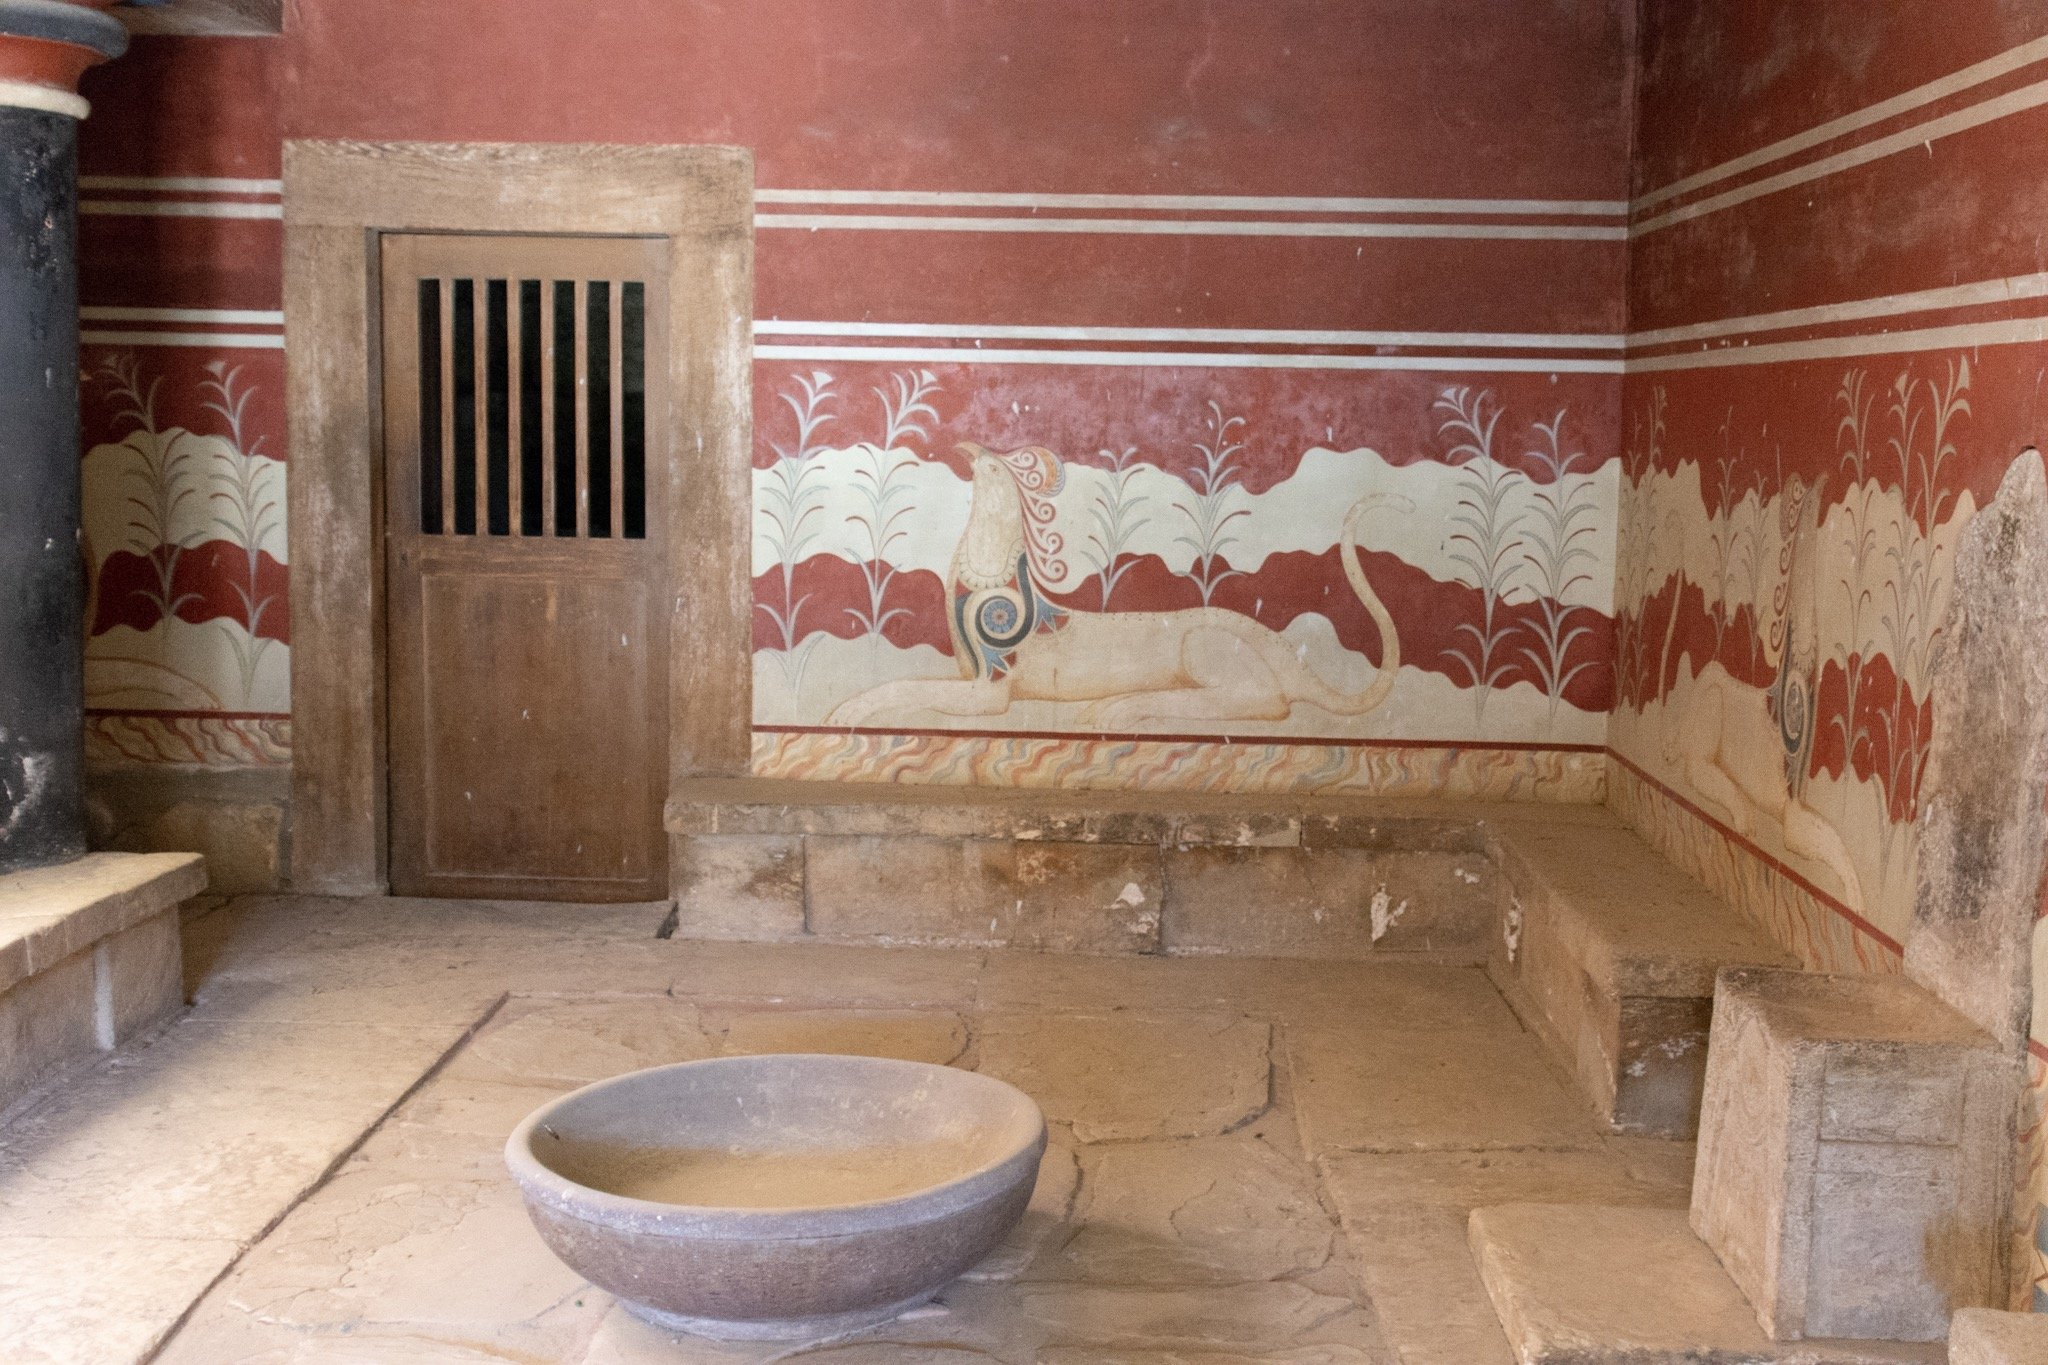 Throne Room in the Minoan Palace